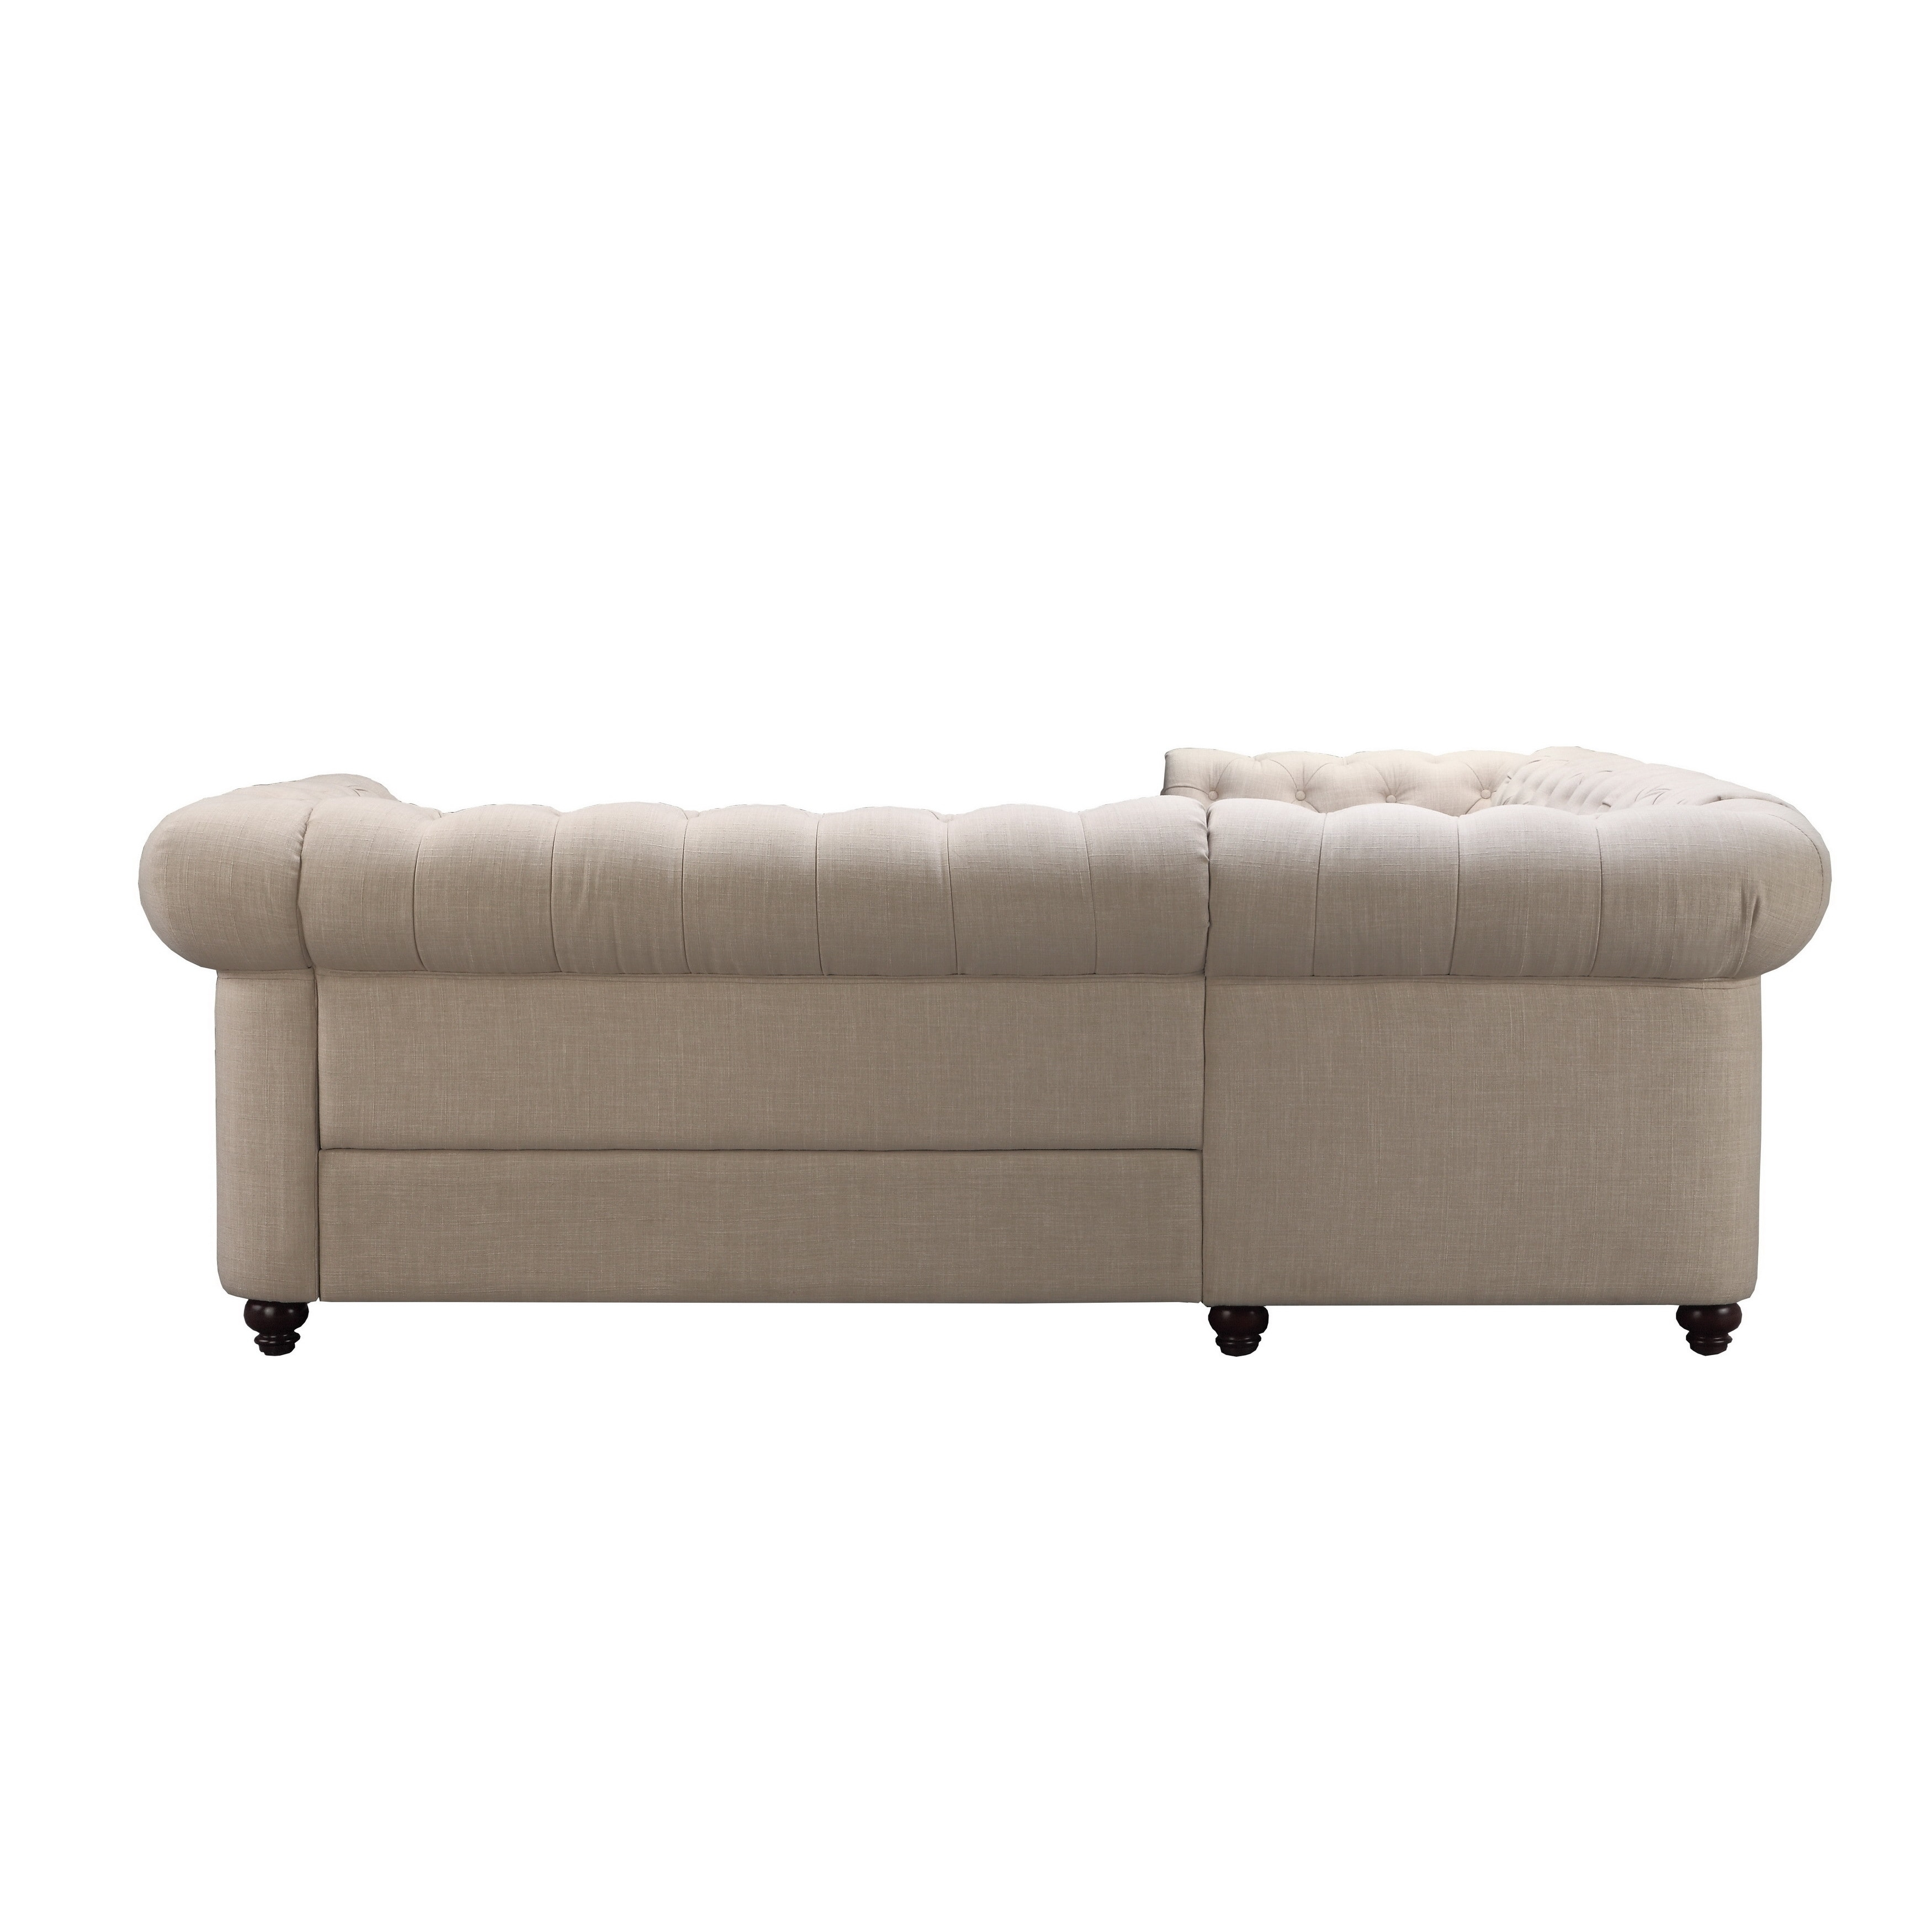 2018 Latest The Bay Sectional Sofas